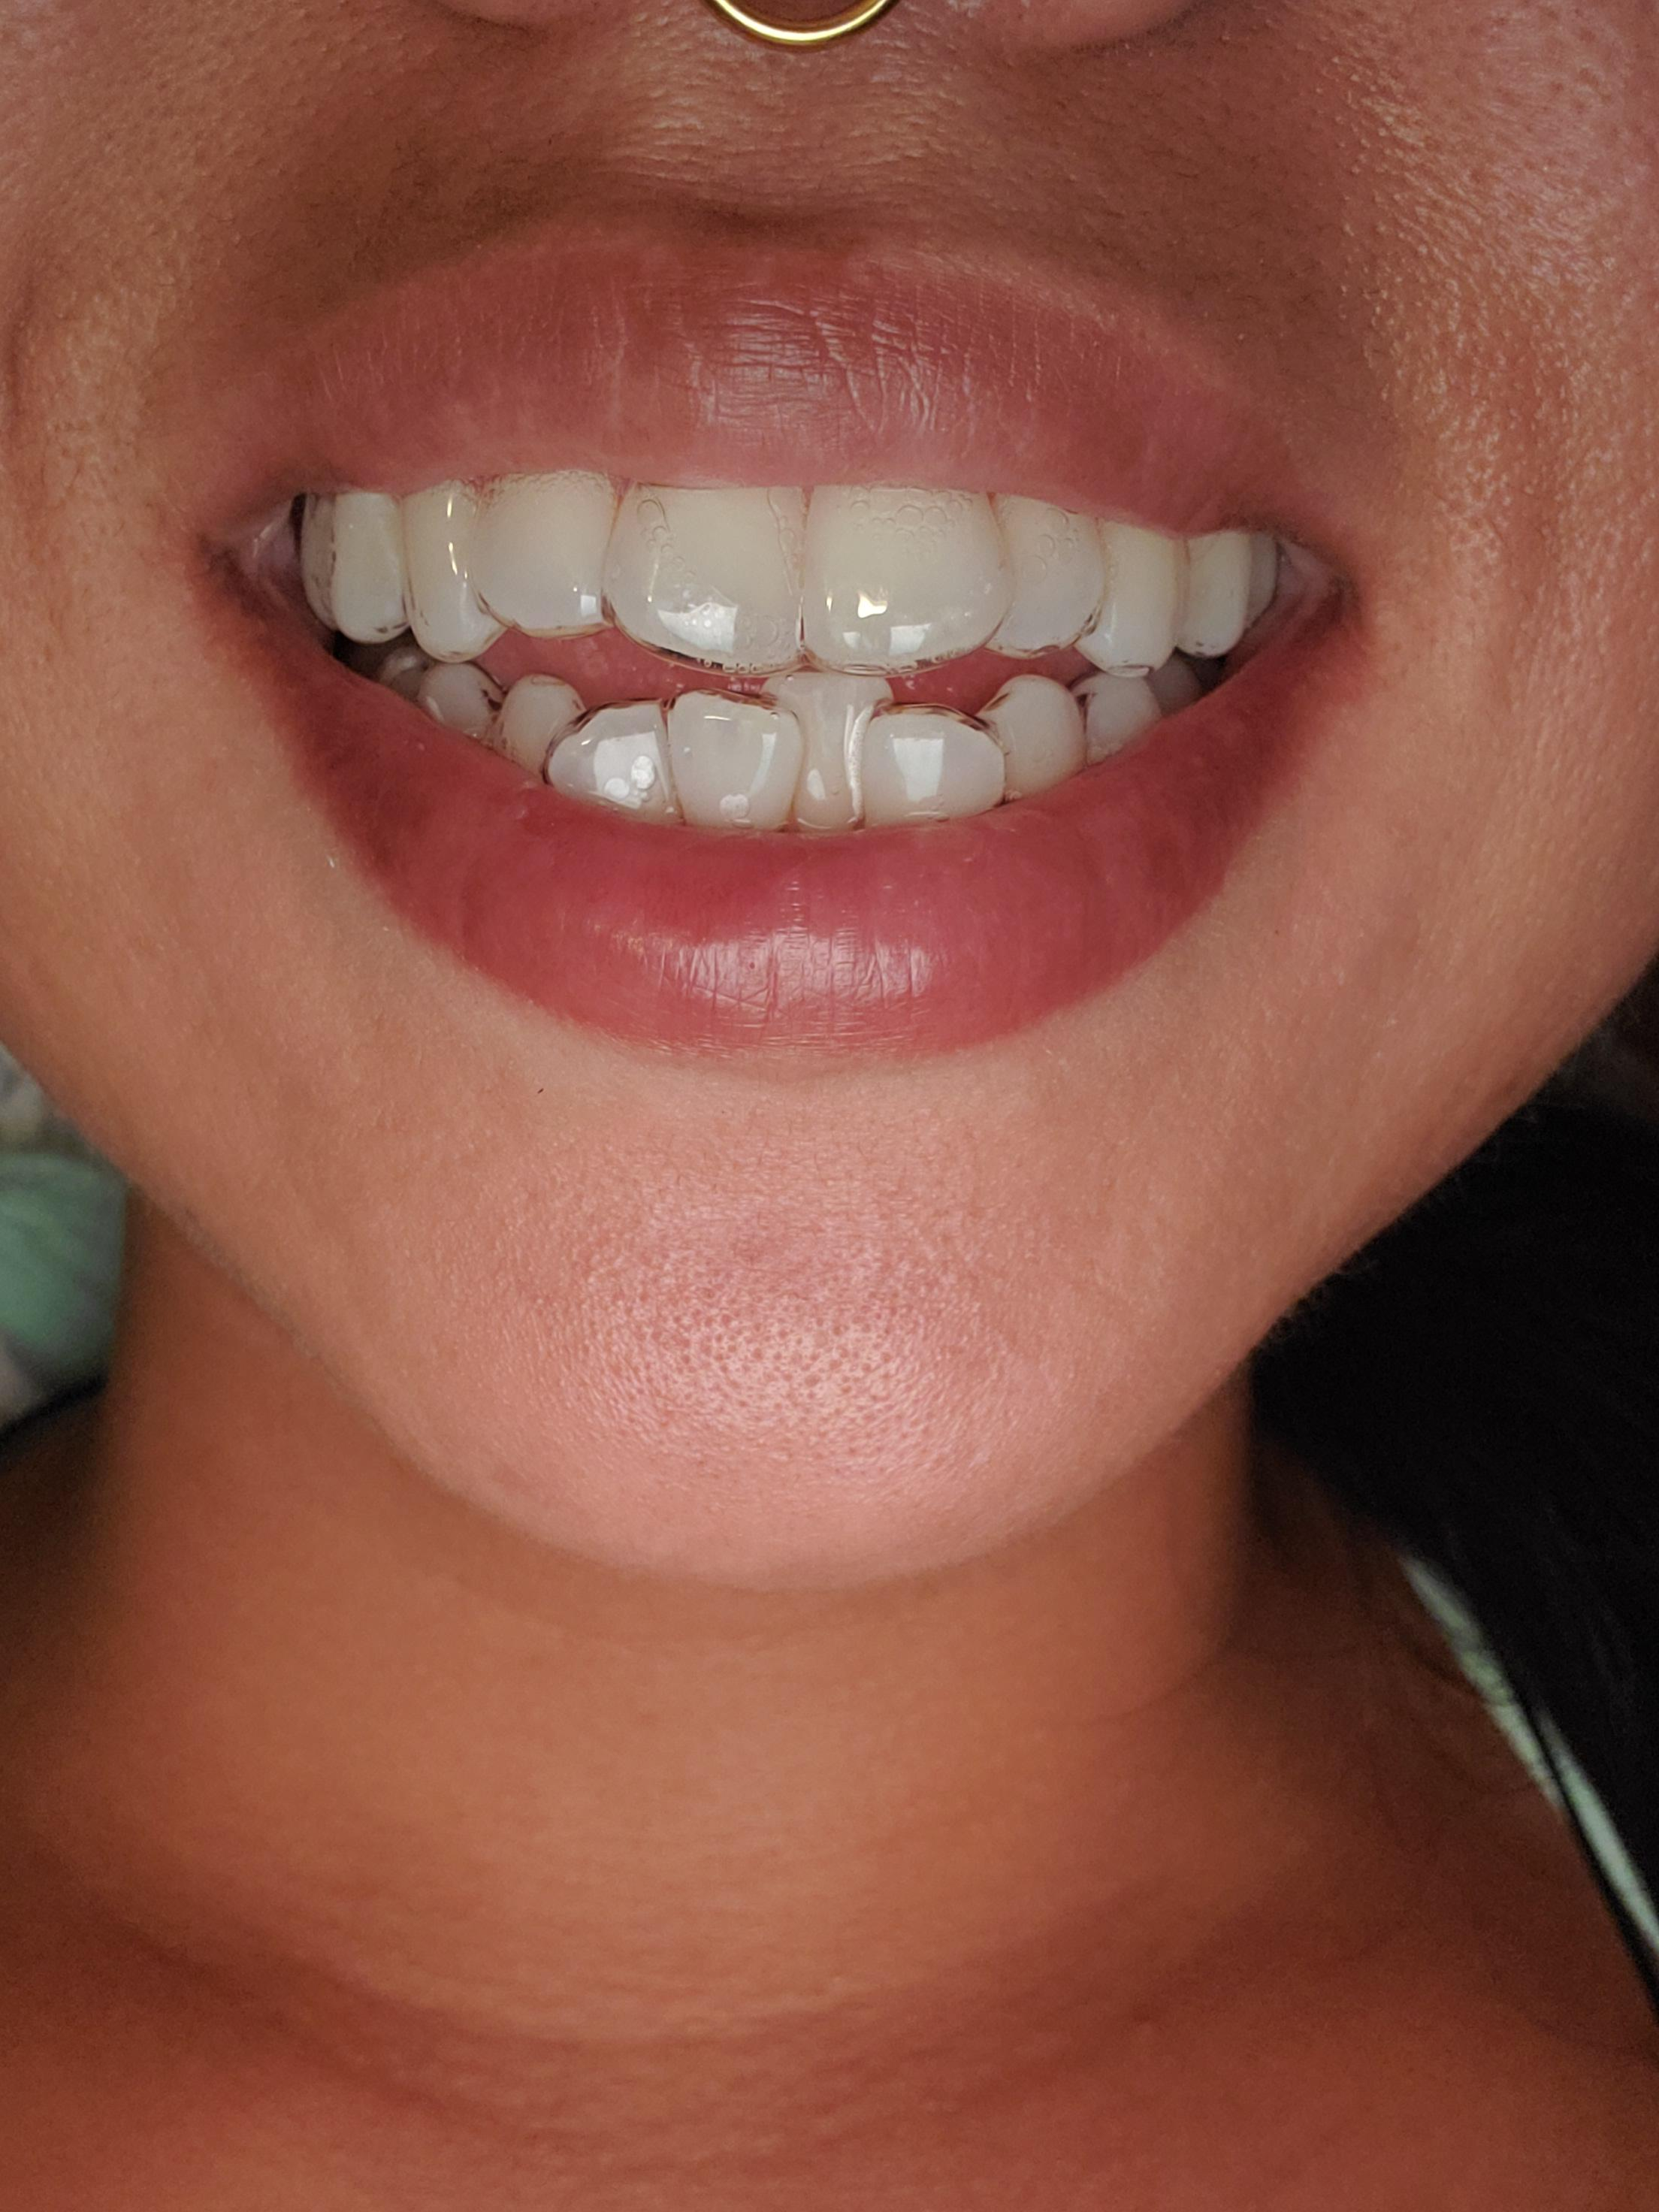 Why Do My Teeth Hurt When I Wear My Retainer : teeth, retainer, Wearing, Aligners., Aligners, Easily, Snapped, Place., There, Barely, Although, Edges, Liners, Mouth,